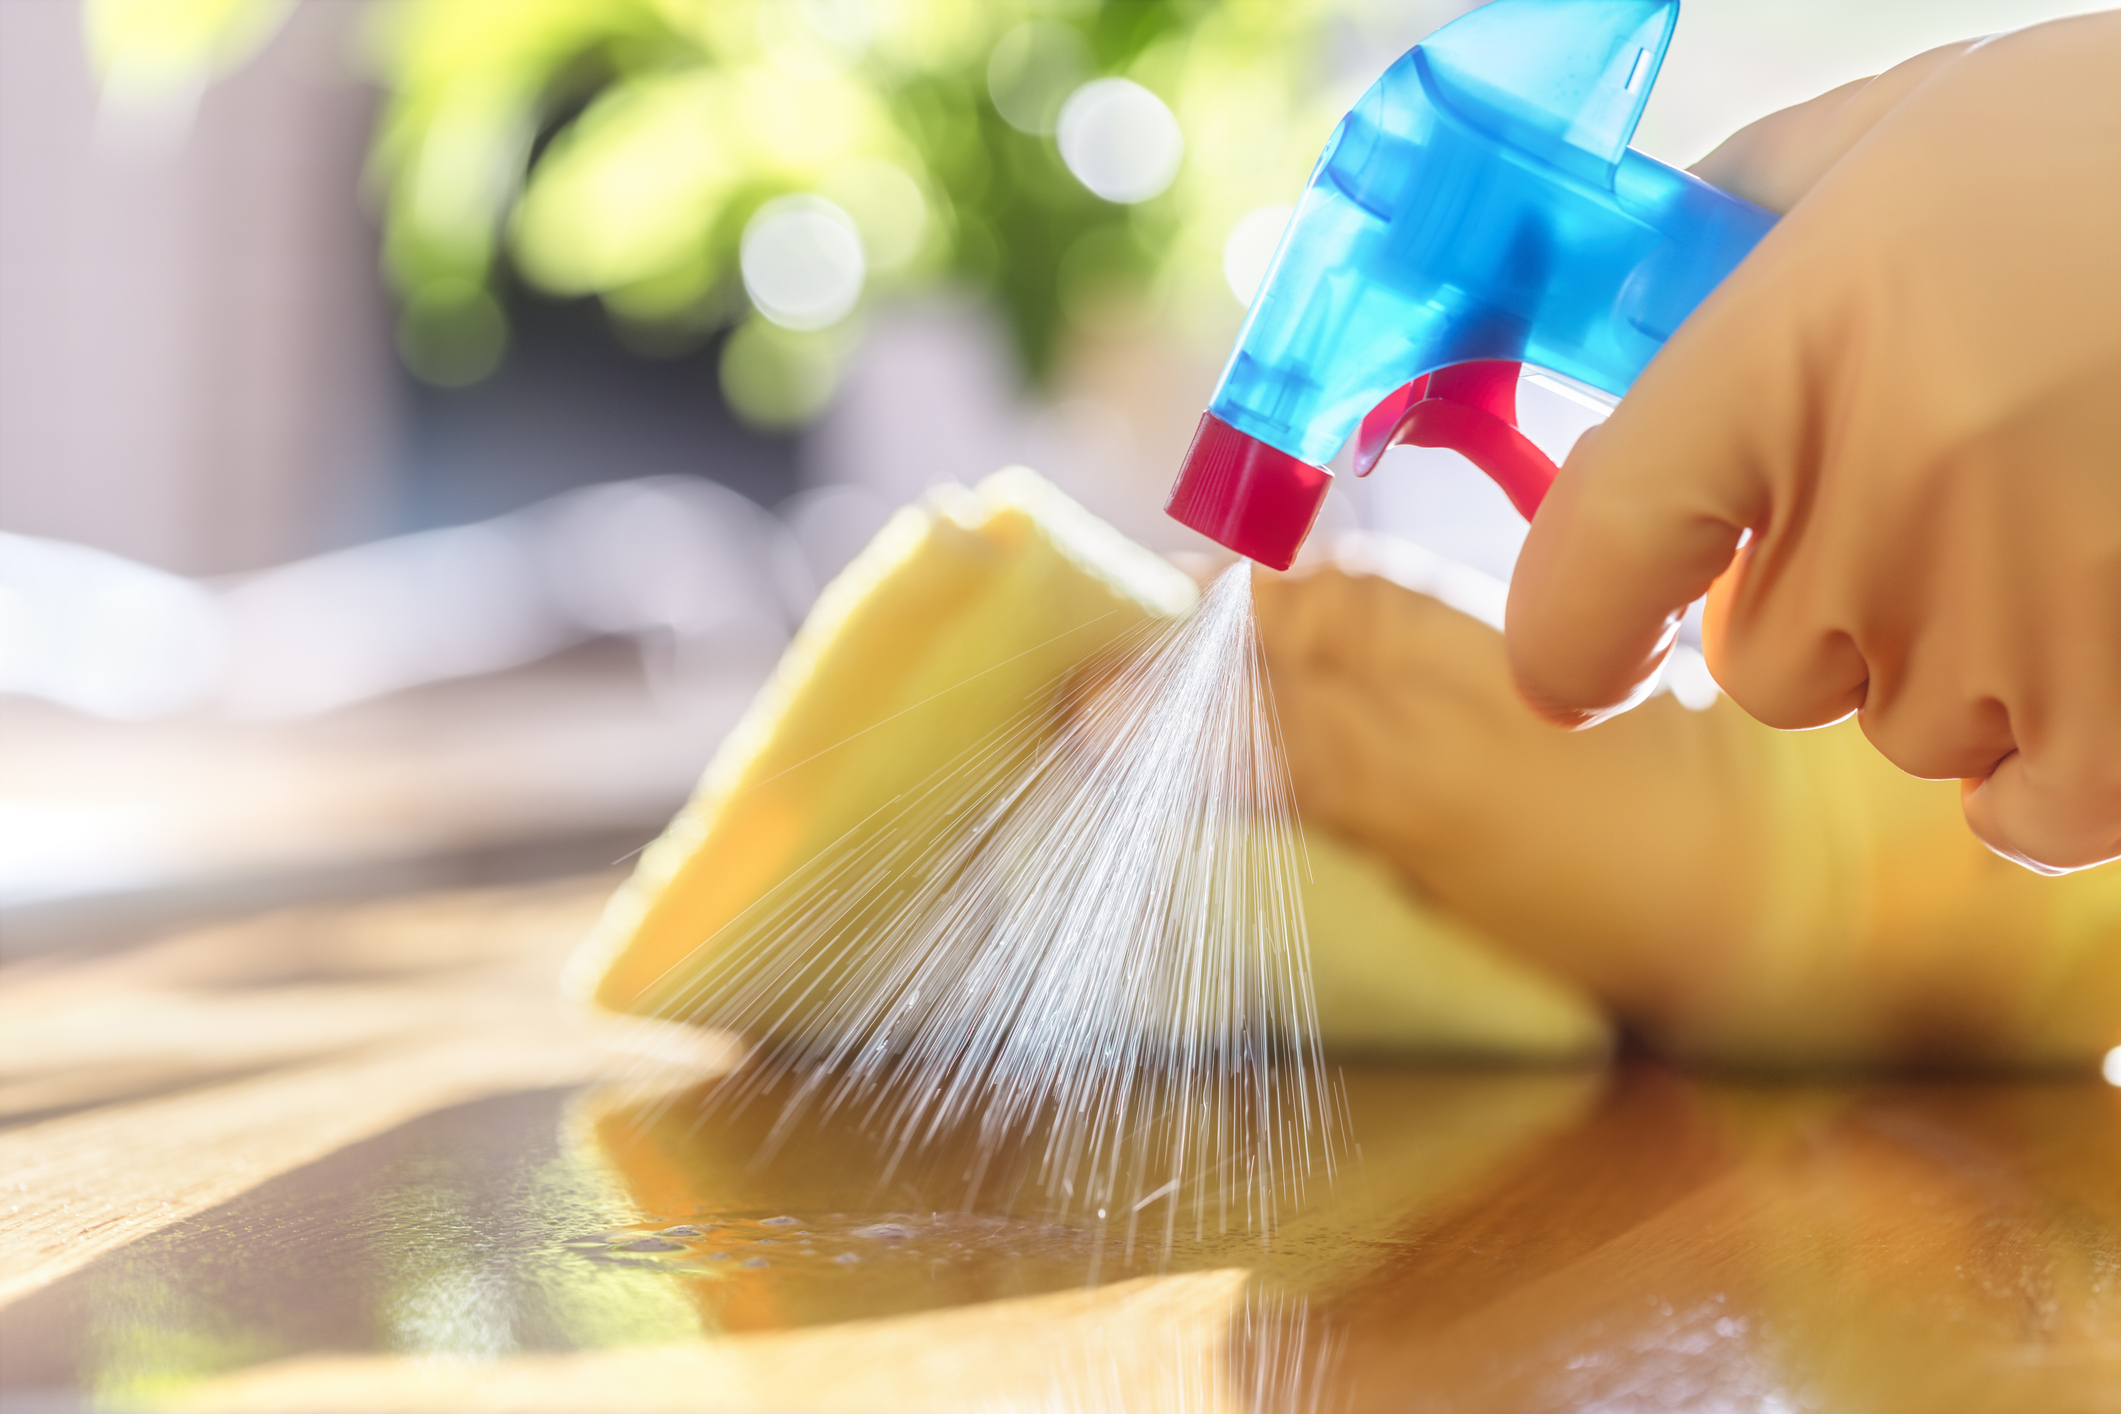 10 Essential Items to Sanitize: Coronavirus Cleaning Tips - eHealth